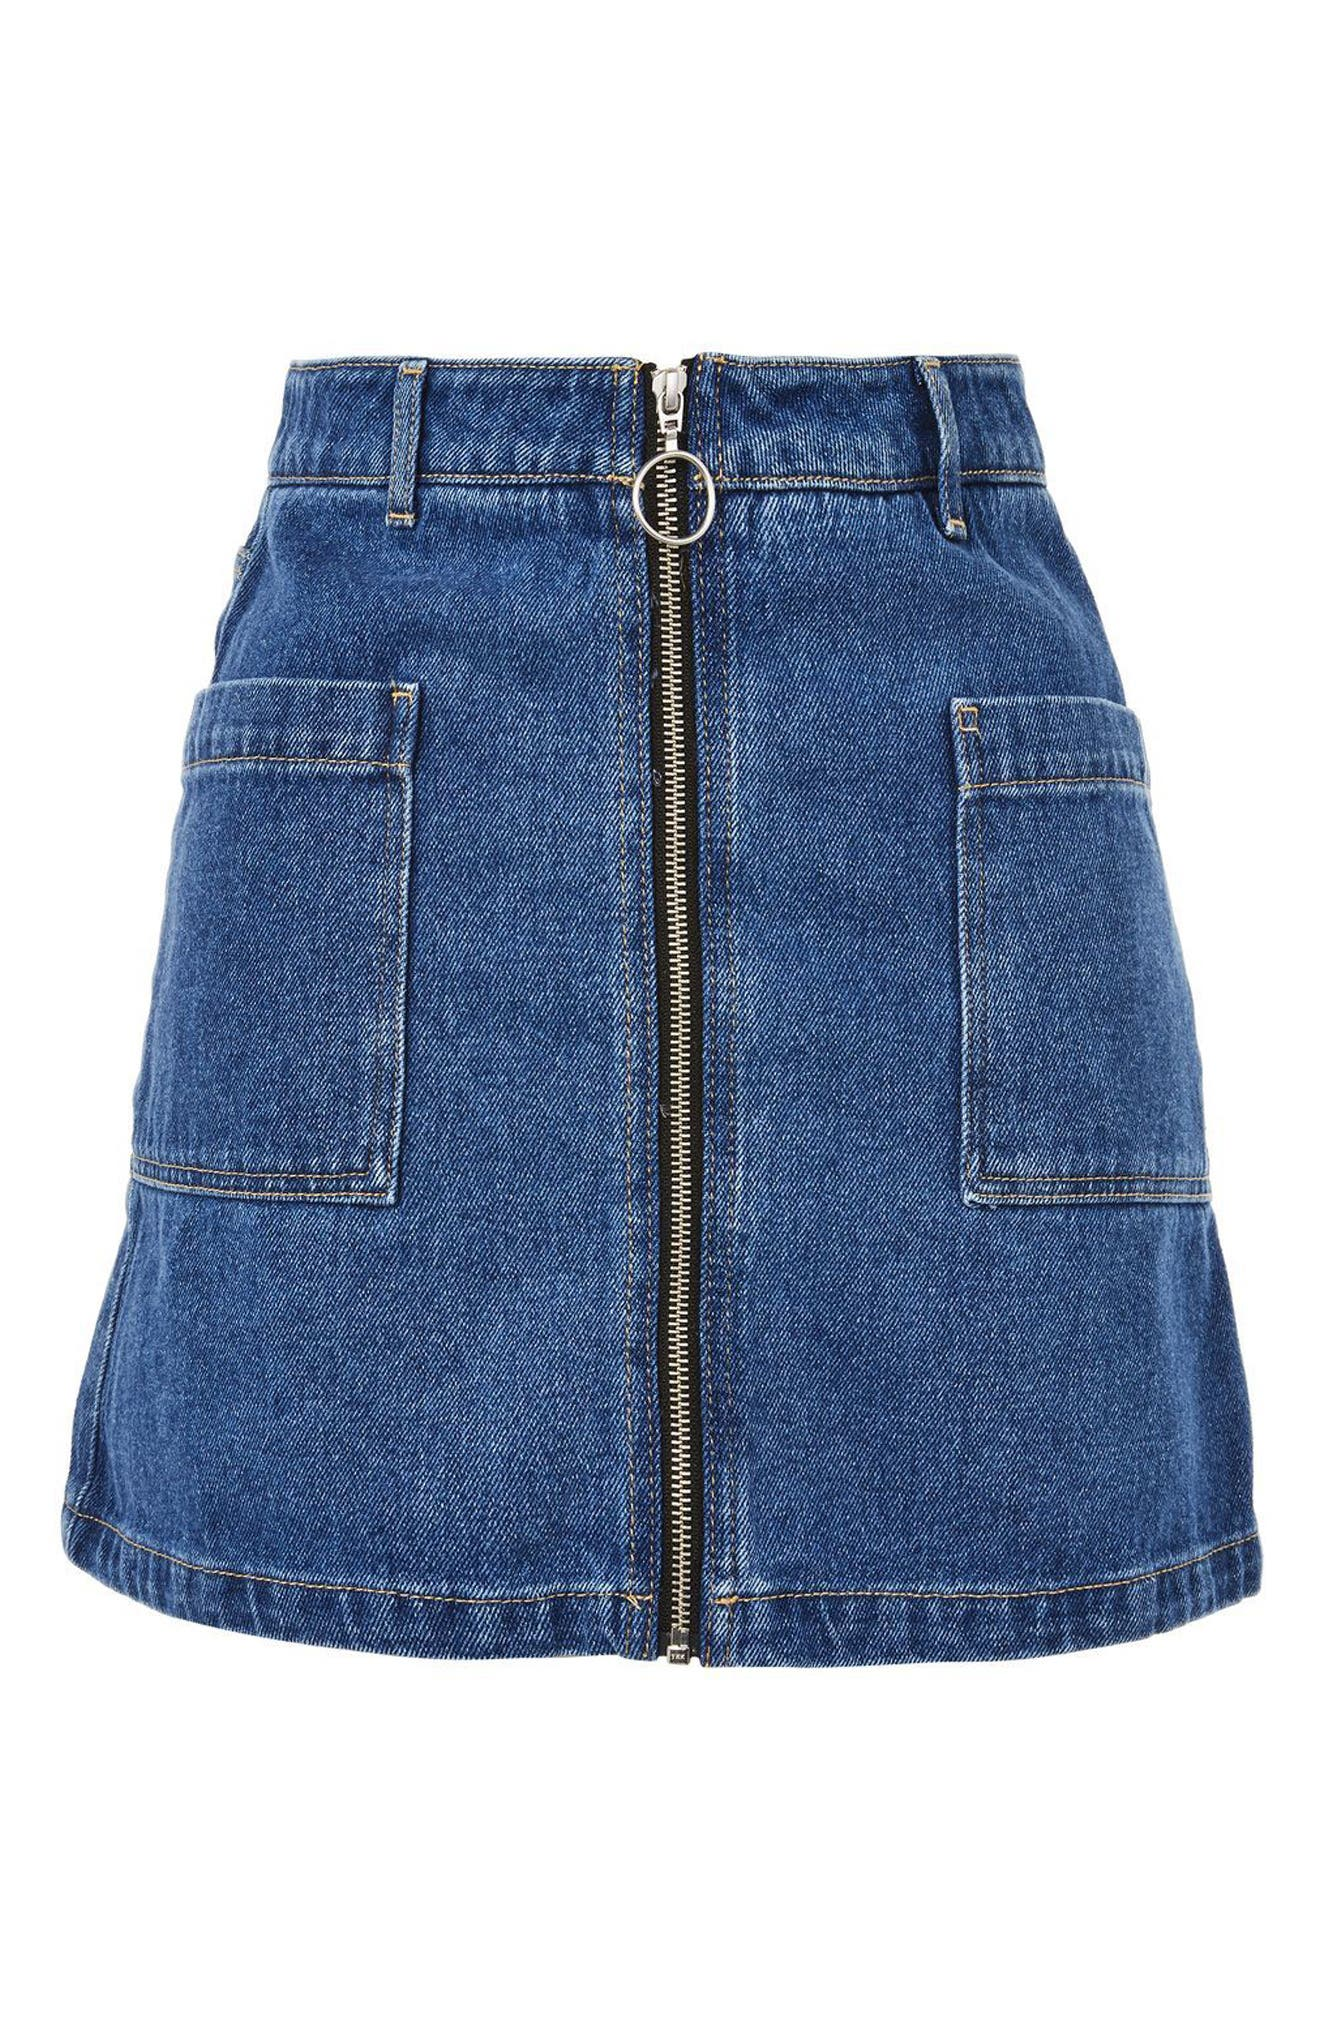 Patch Pocket A-Line Denim Miniskirt,                             Alternate thumbnail 3, color,